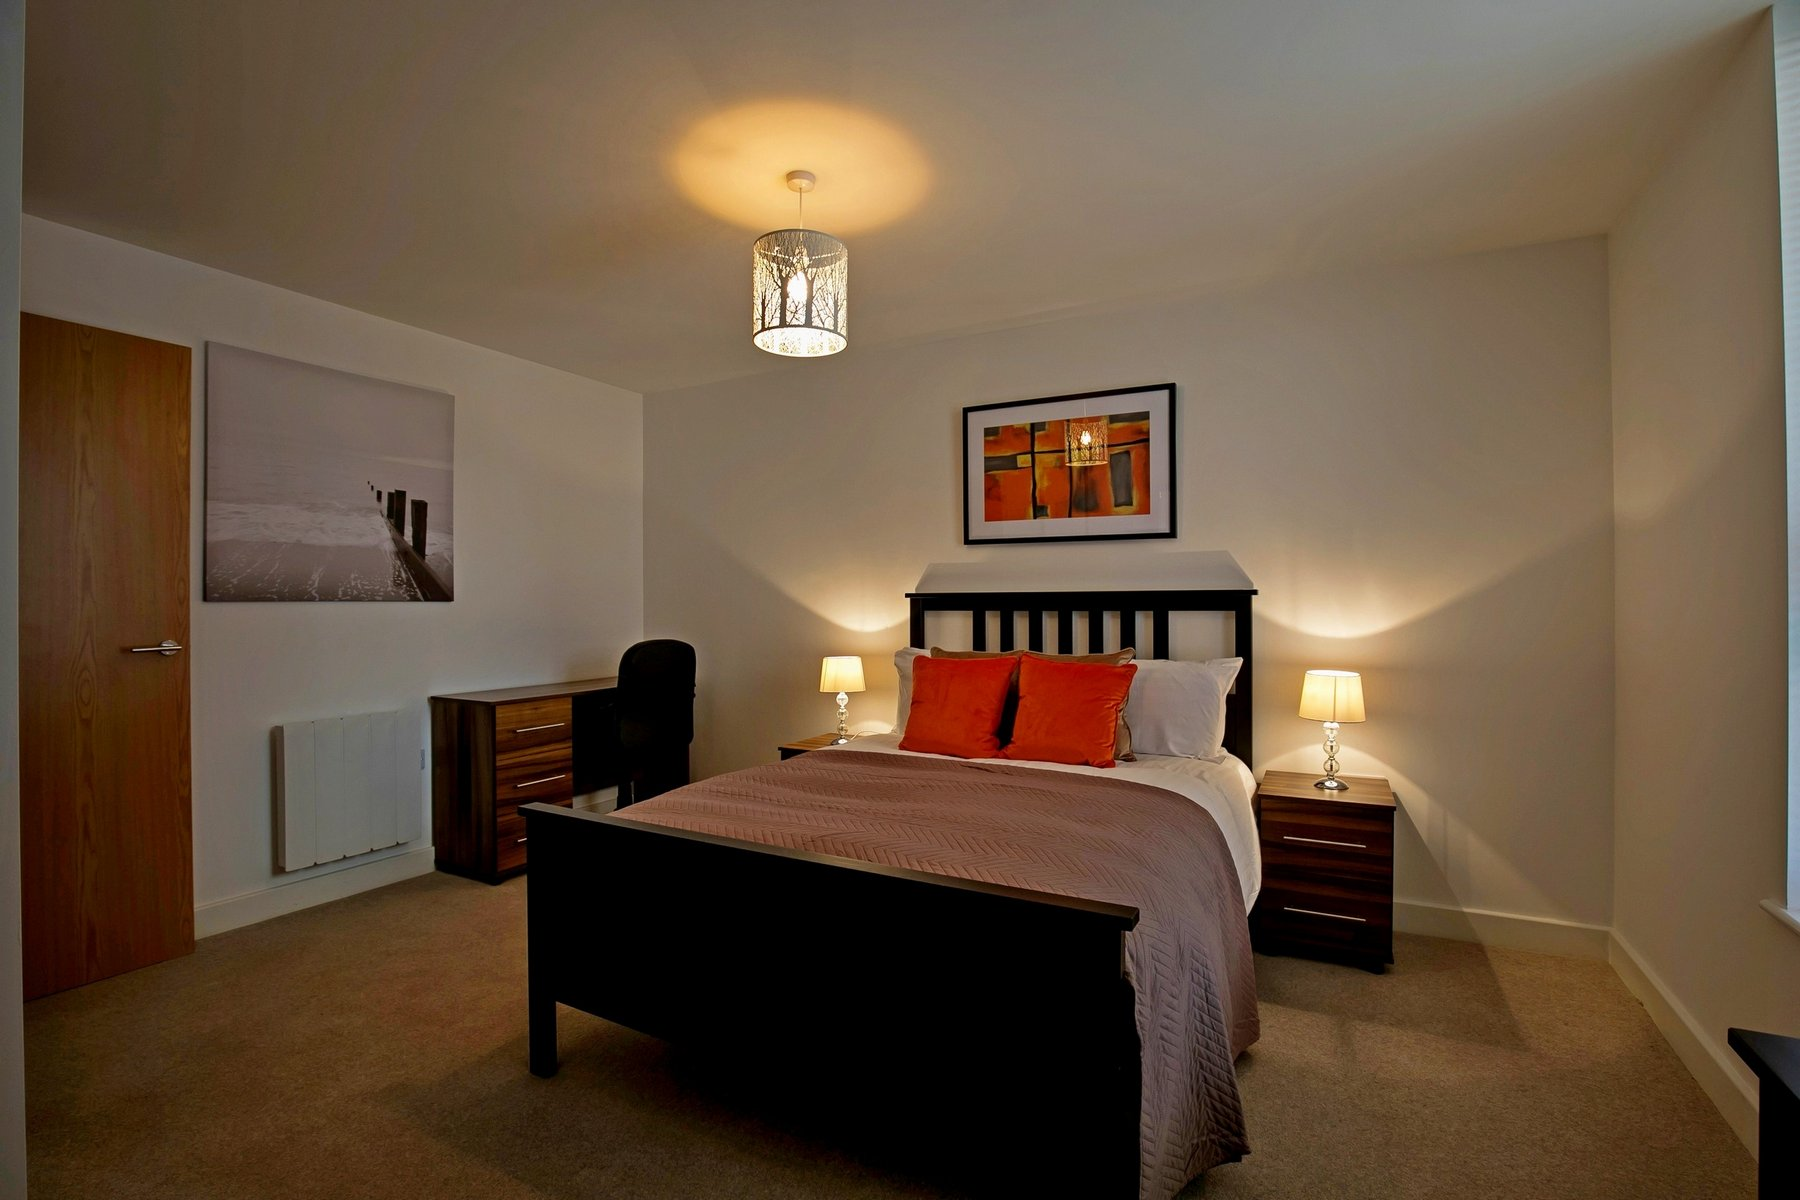 Comfy bed at Kennet House Serviced Apartments, Centre, Reading - Citybase Apartments